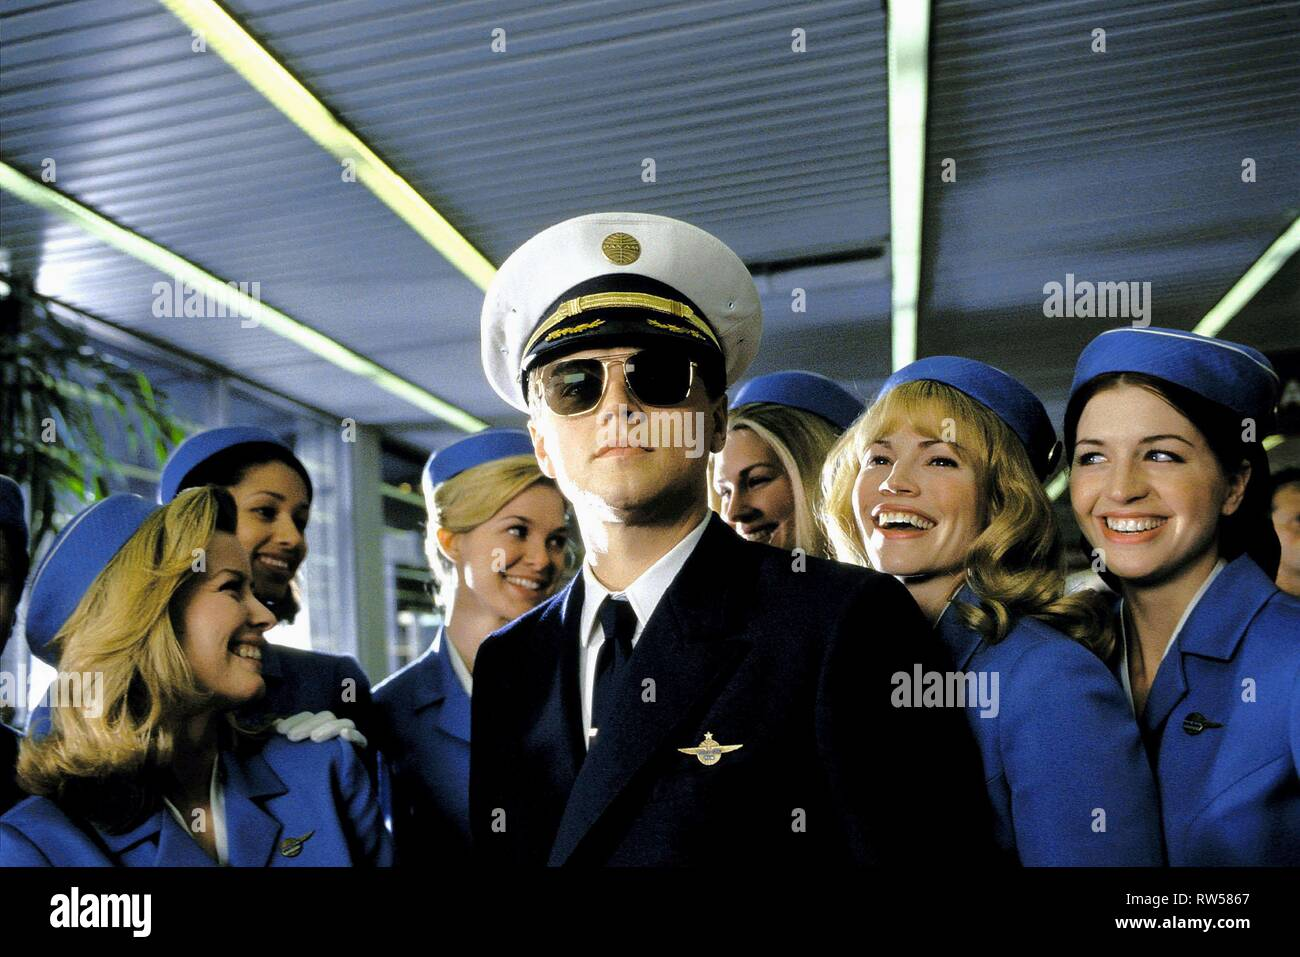 LEONARDO DICAPRIO, CATCH ME IF YOU CAN, 2002 Stock Photo